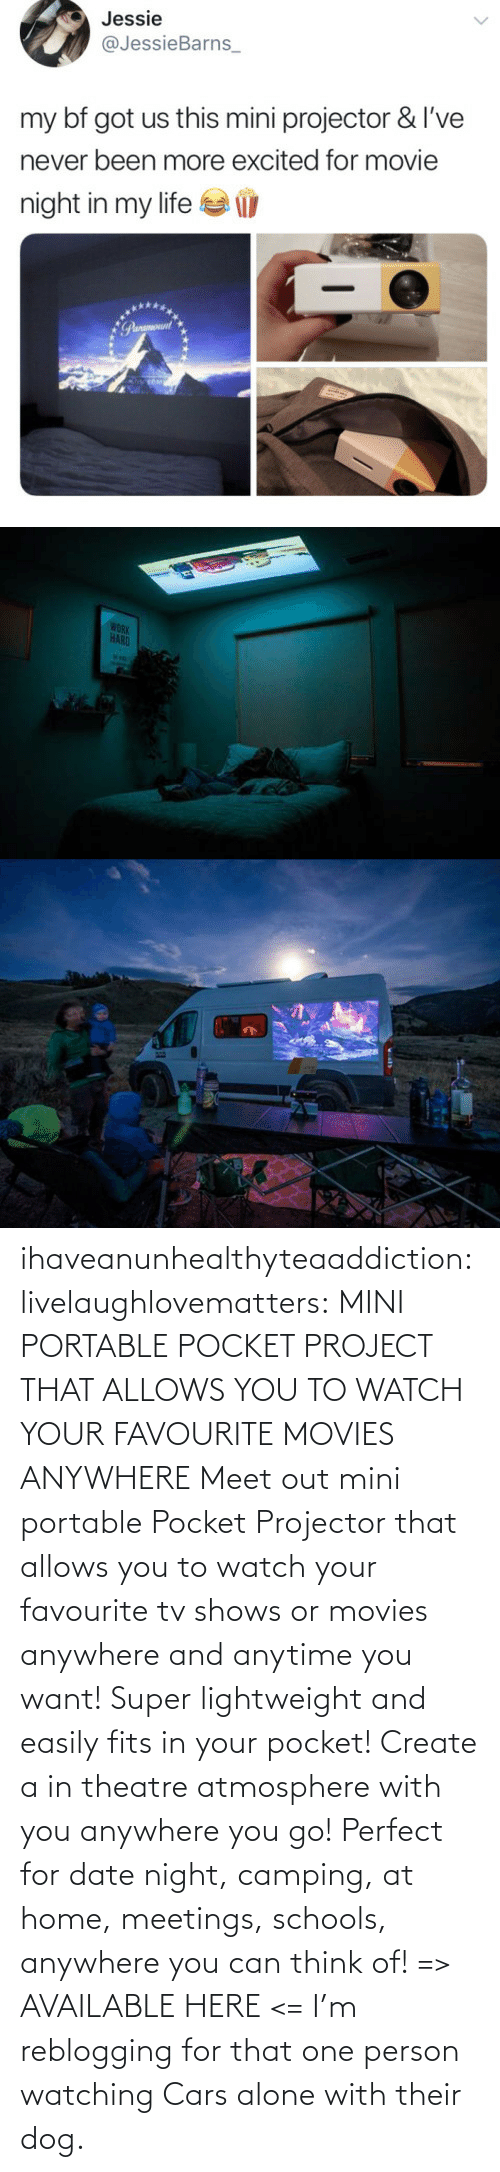 Lightweight: ihaveanunhealthyteaaddiction: livelaughlovematters:  MINI PORTABLE POCKET PROJECT THAT ALLOWS YOU TO WATCH YOUR FAVOURITE MOVIES ANYWHERE Meet out mini portable Pocket Projector that allows you to watch your favourite tv shows or movies anywhere and anytime you want! Super lightweight and easily fits in your pocket! Create a in theatre atmosphere with you anywhere you go! Perfect for date night, camping, at home, meetings, schools, anywhere you can think of! => AVAILABLE HERE <=    I'm reblogging for that one person watching Cars alone with their dog.